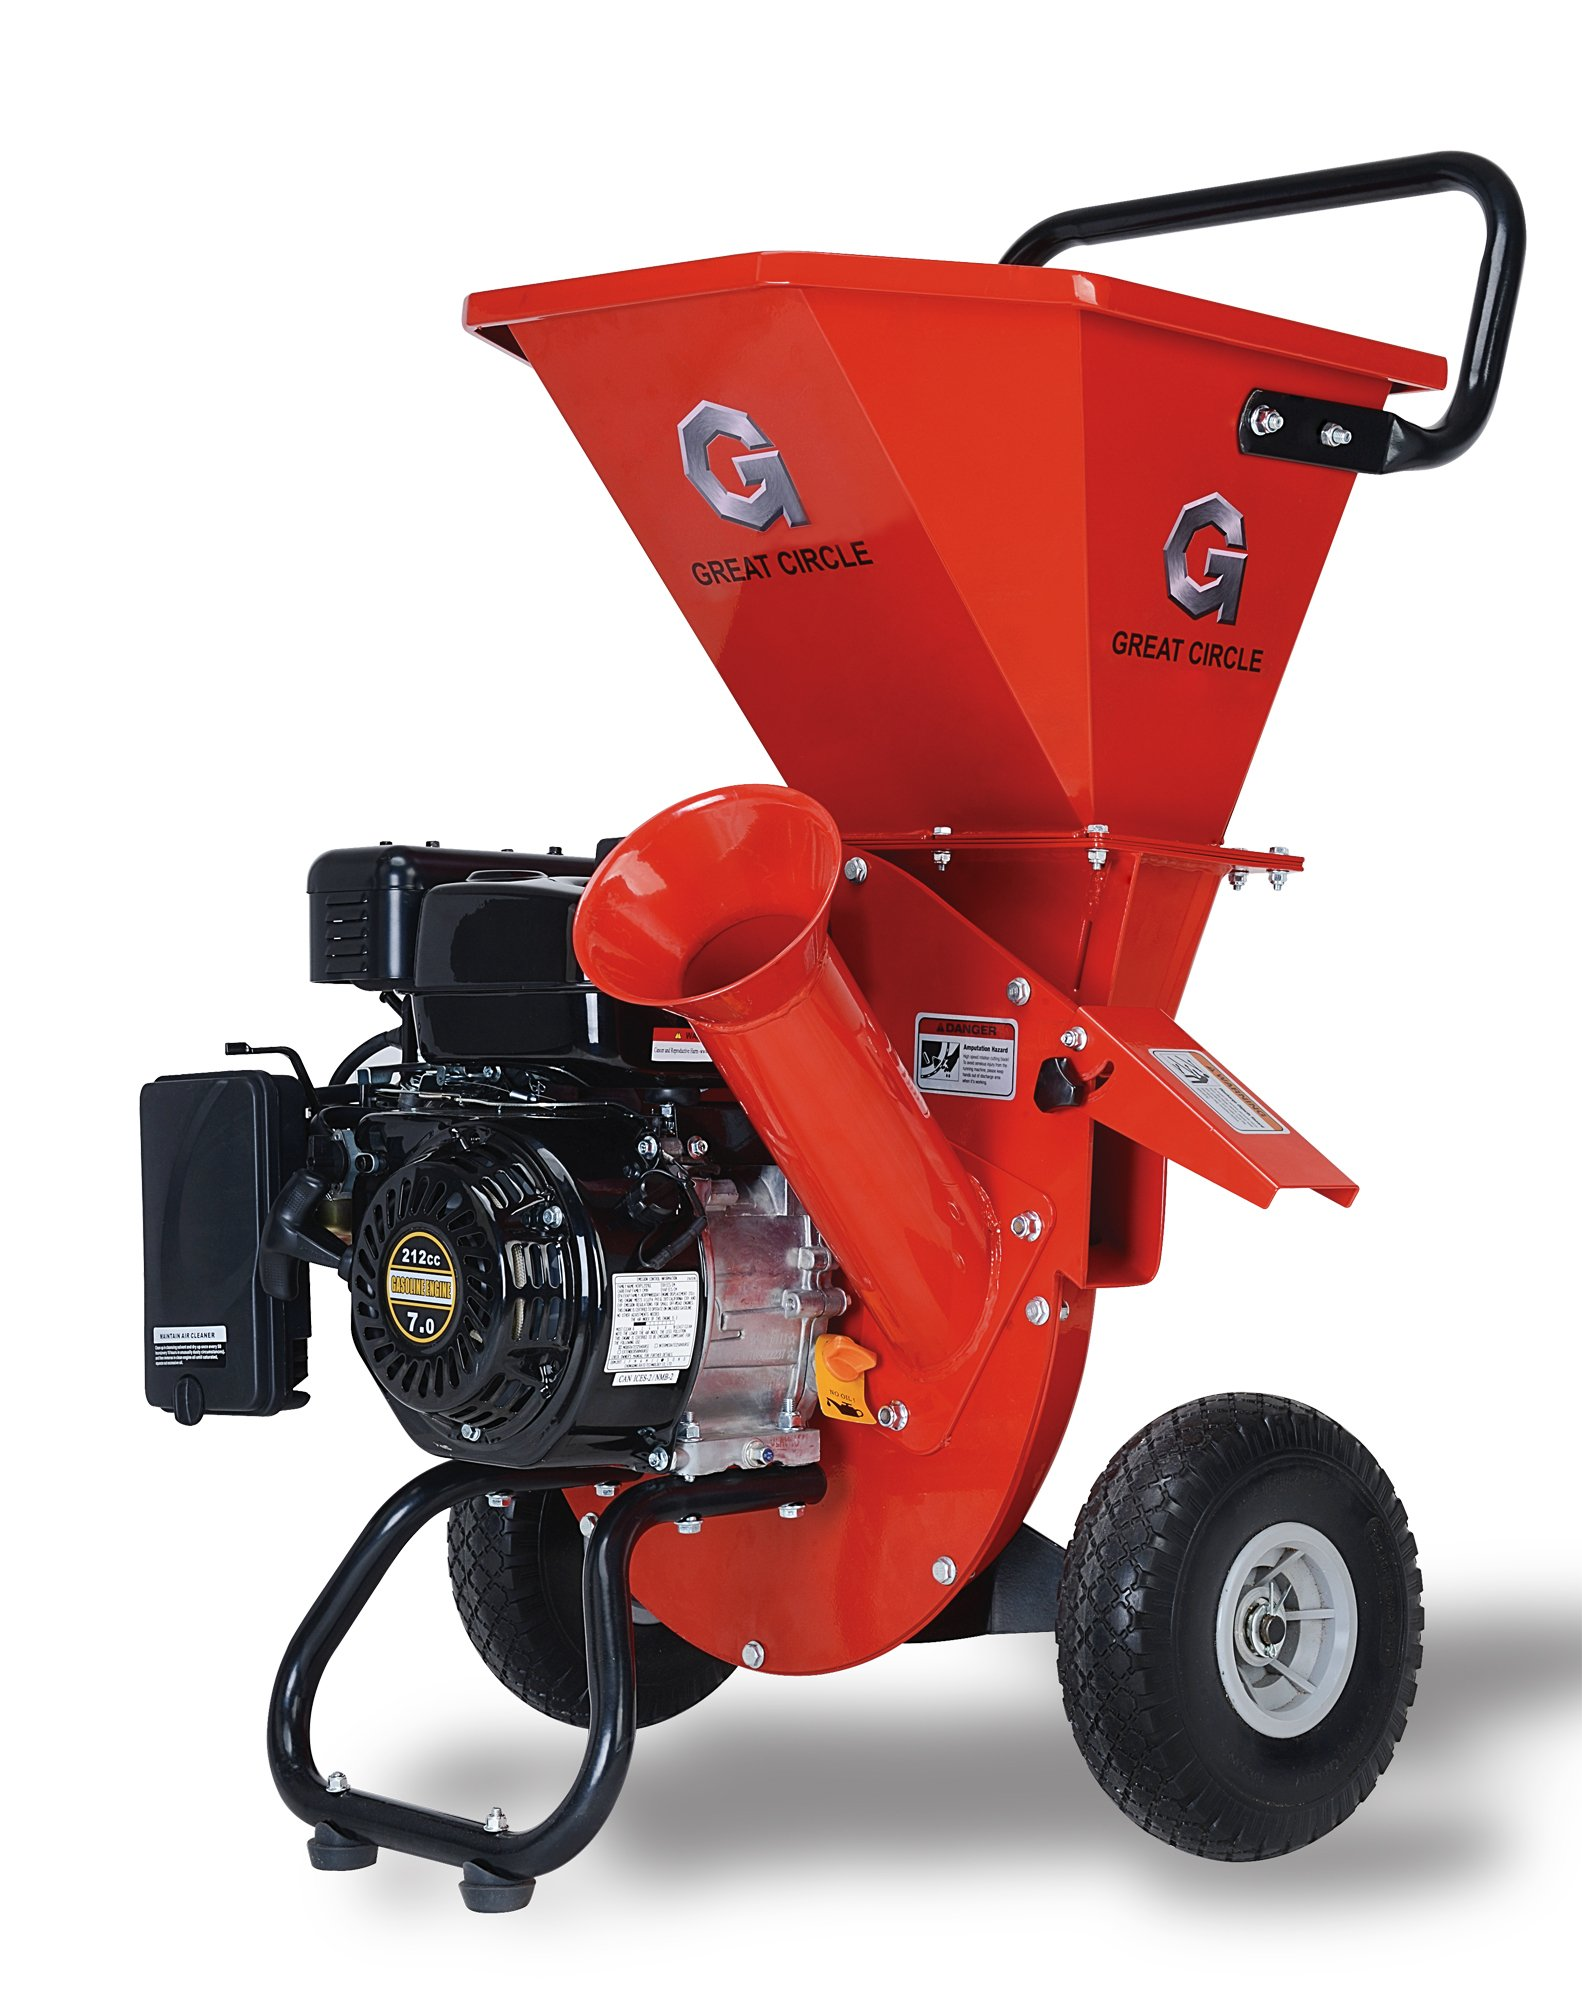 GreatCircleUSA 7HP Heavy Duty 212cc Gas Powered 3:1 capable Multi-Function Wood Chipper Shredder 3'' max Wood Diameter Capacity, 3 Years Warranty, CARB Certified, Ship to California(IMPROVED PACKAGING)